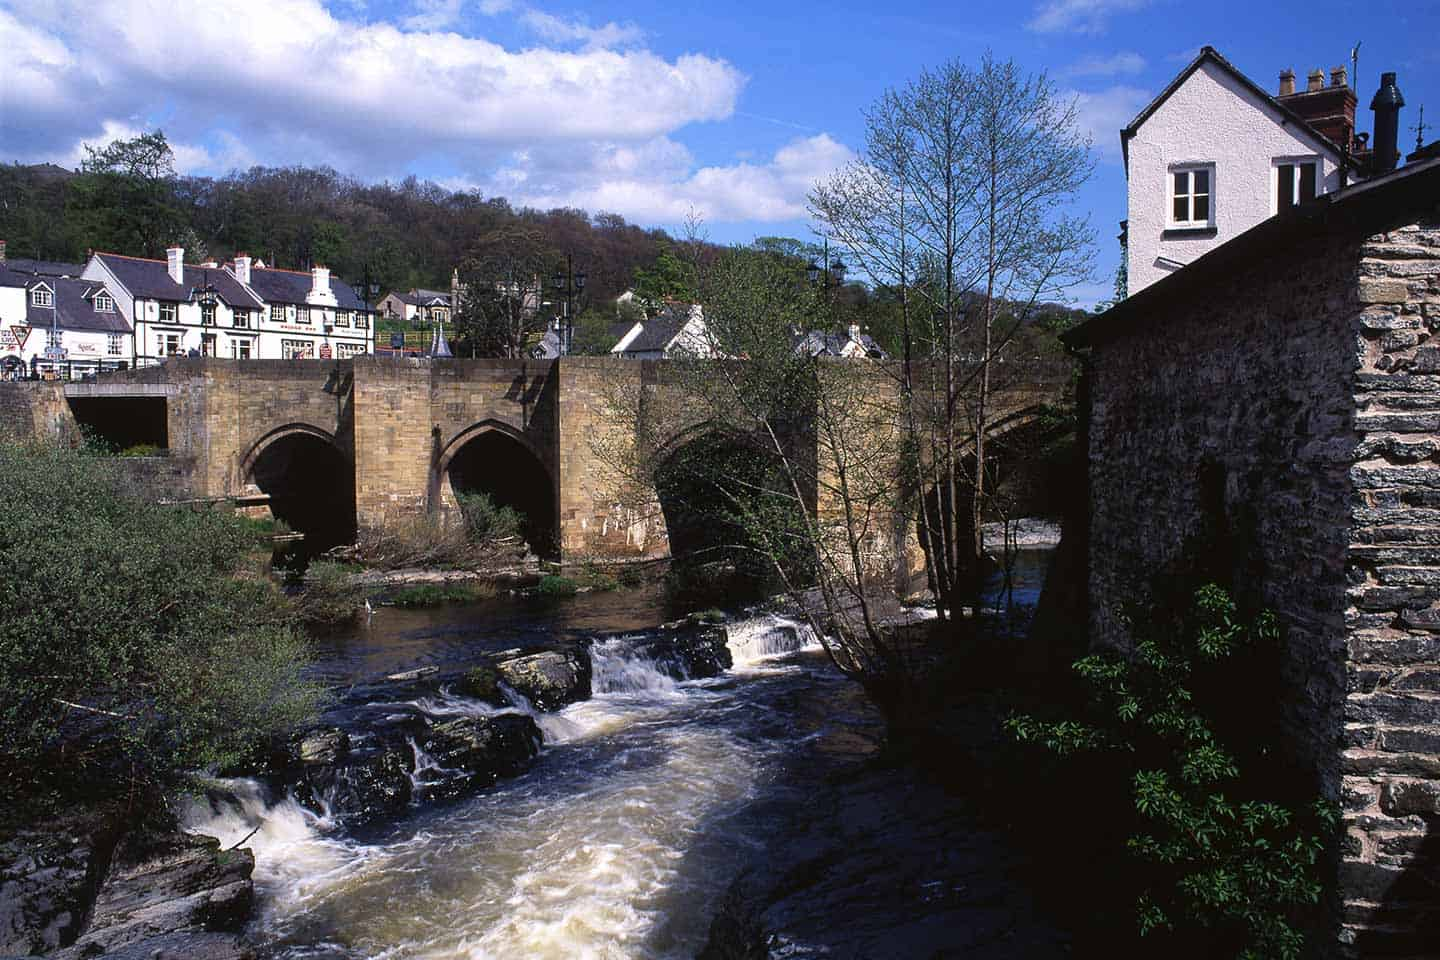 Image of Llangollen Bridge